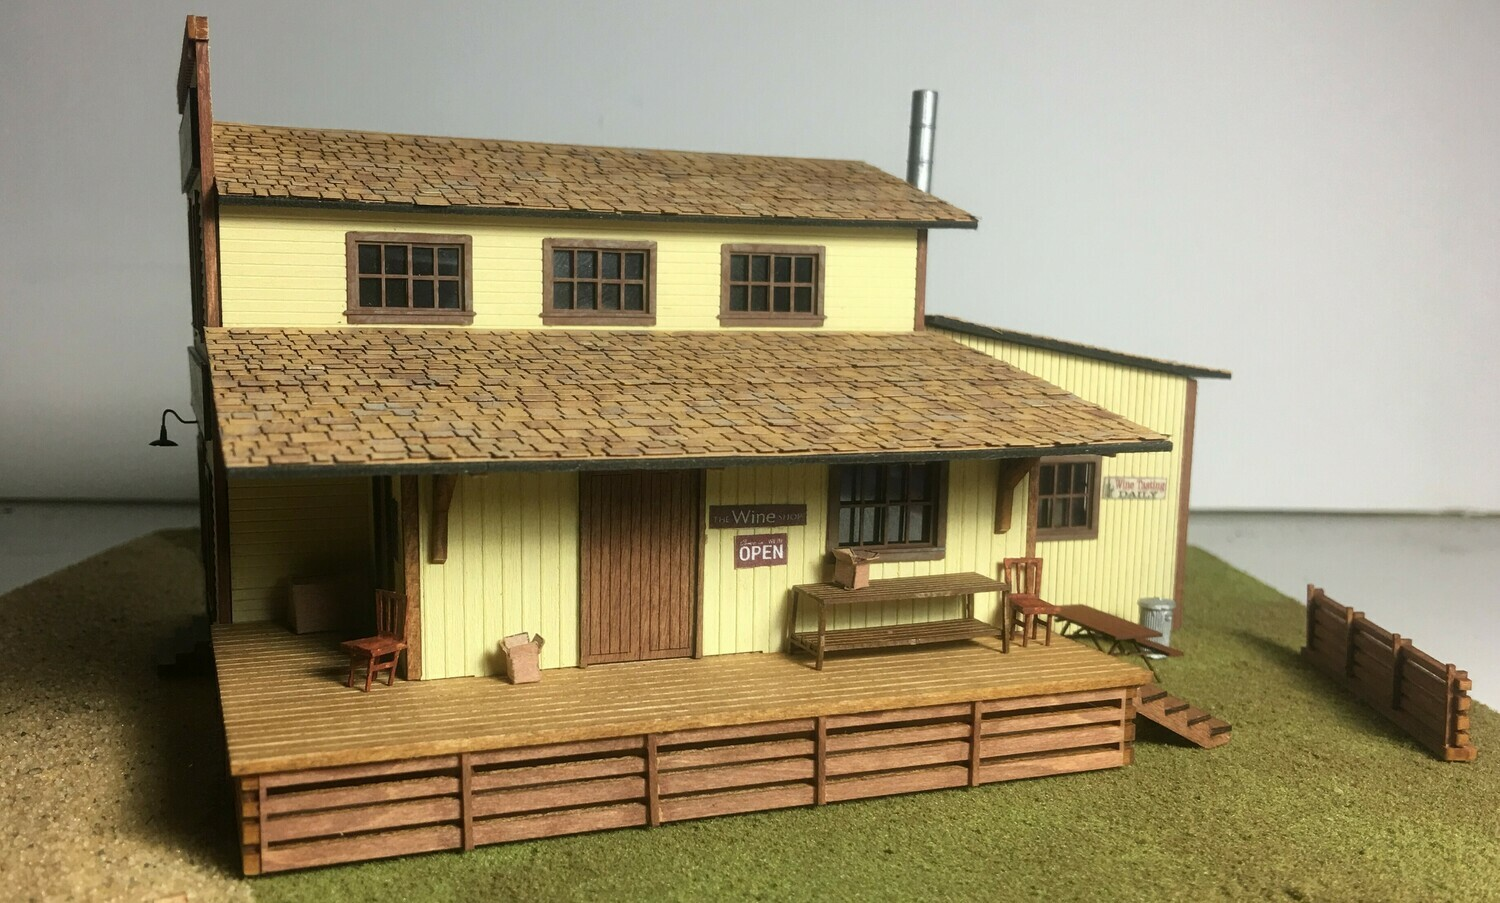 N Scale - Motrak Models - 13402 - Structure, Commercial,Winery - Commercial Structures - Countryside Winery